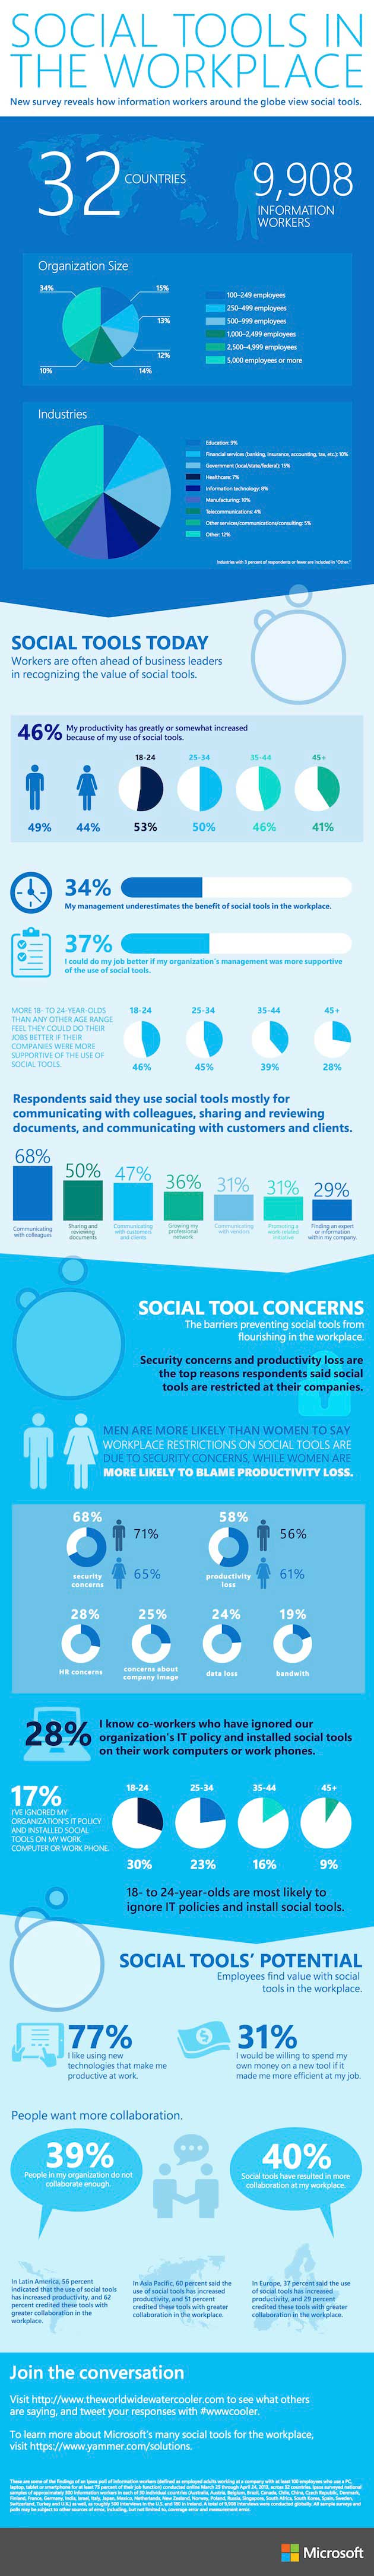 How Social Tools Are Used in the Workplace [Infographic]